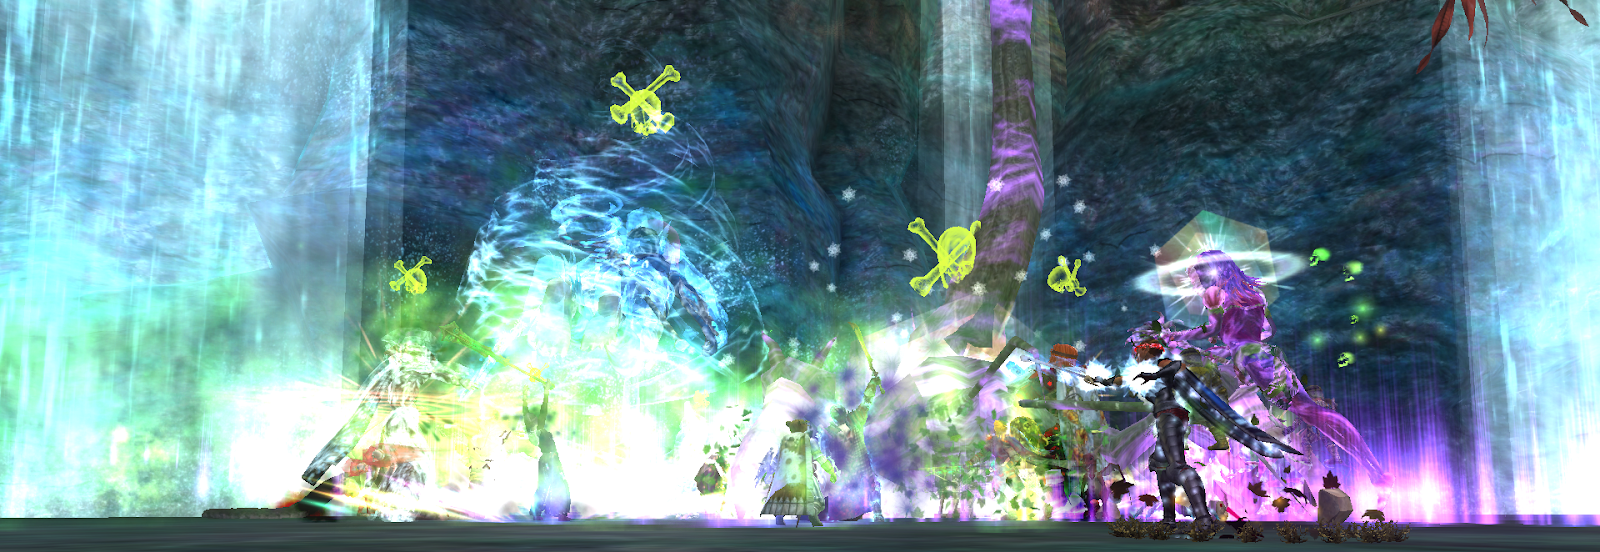 Inventory Full: Back To The Old House : GW2, EQ2